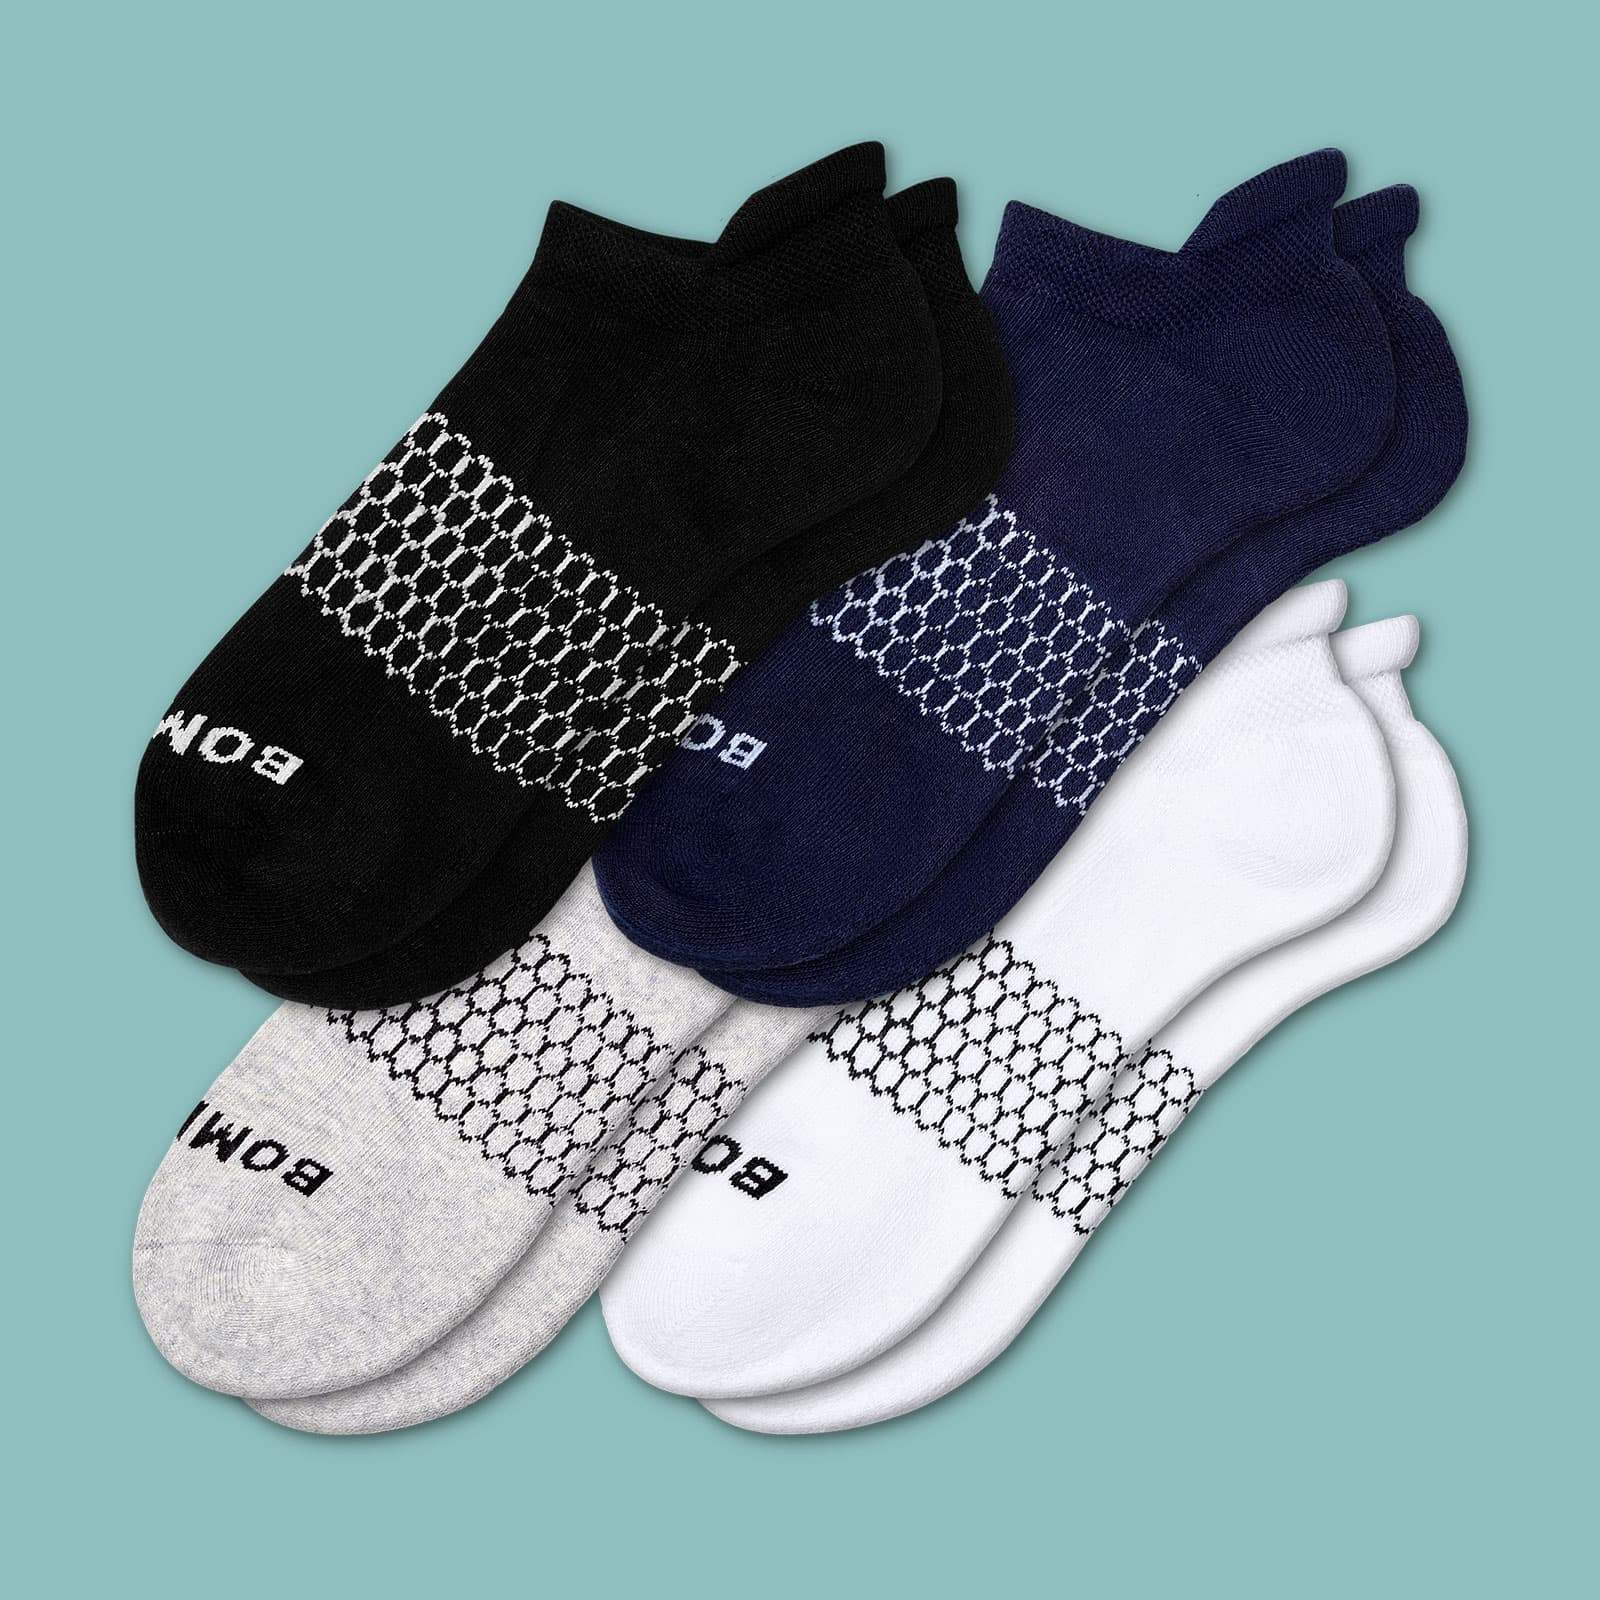 Women's Solids Ankle Sock 4 Pack by Bombas